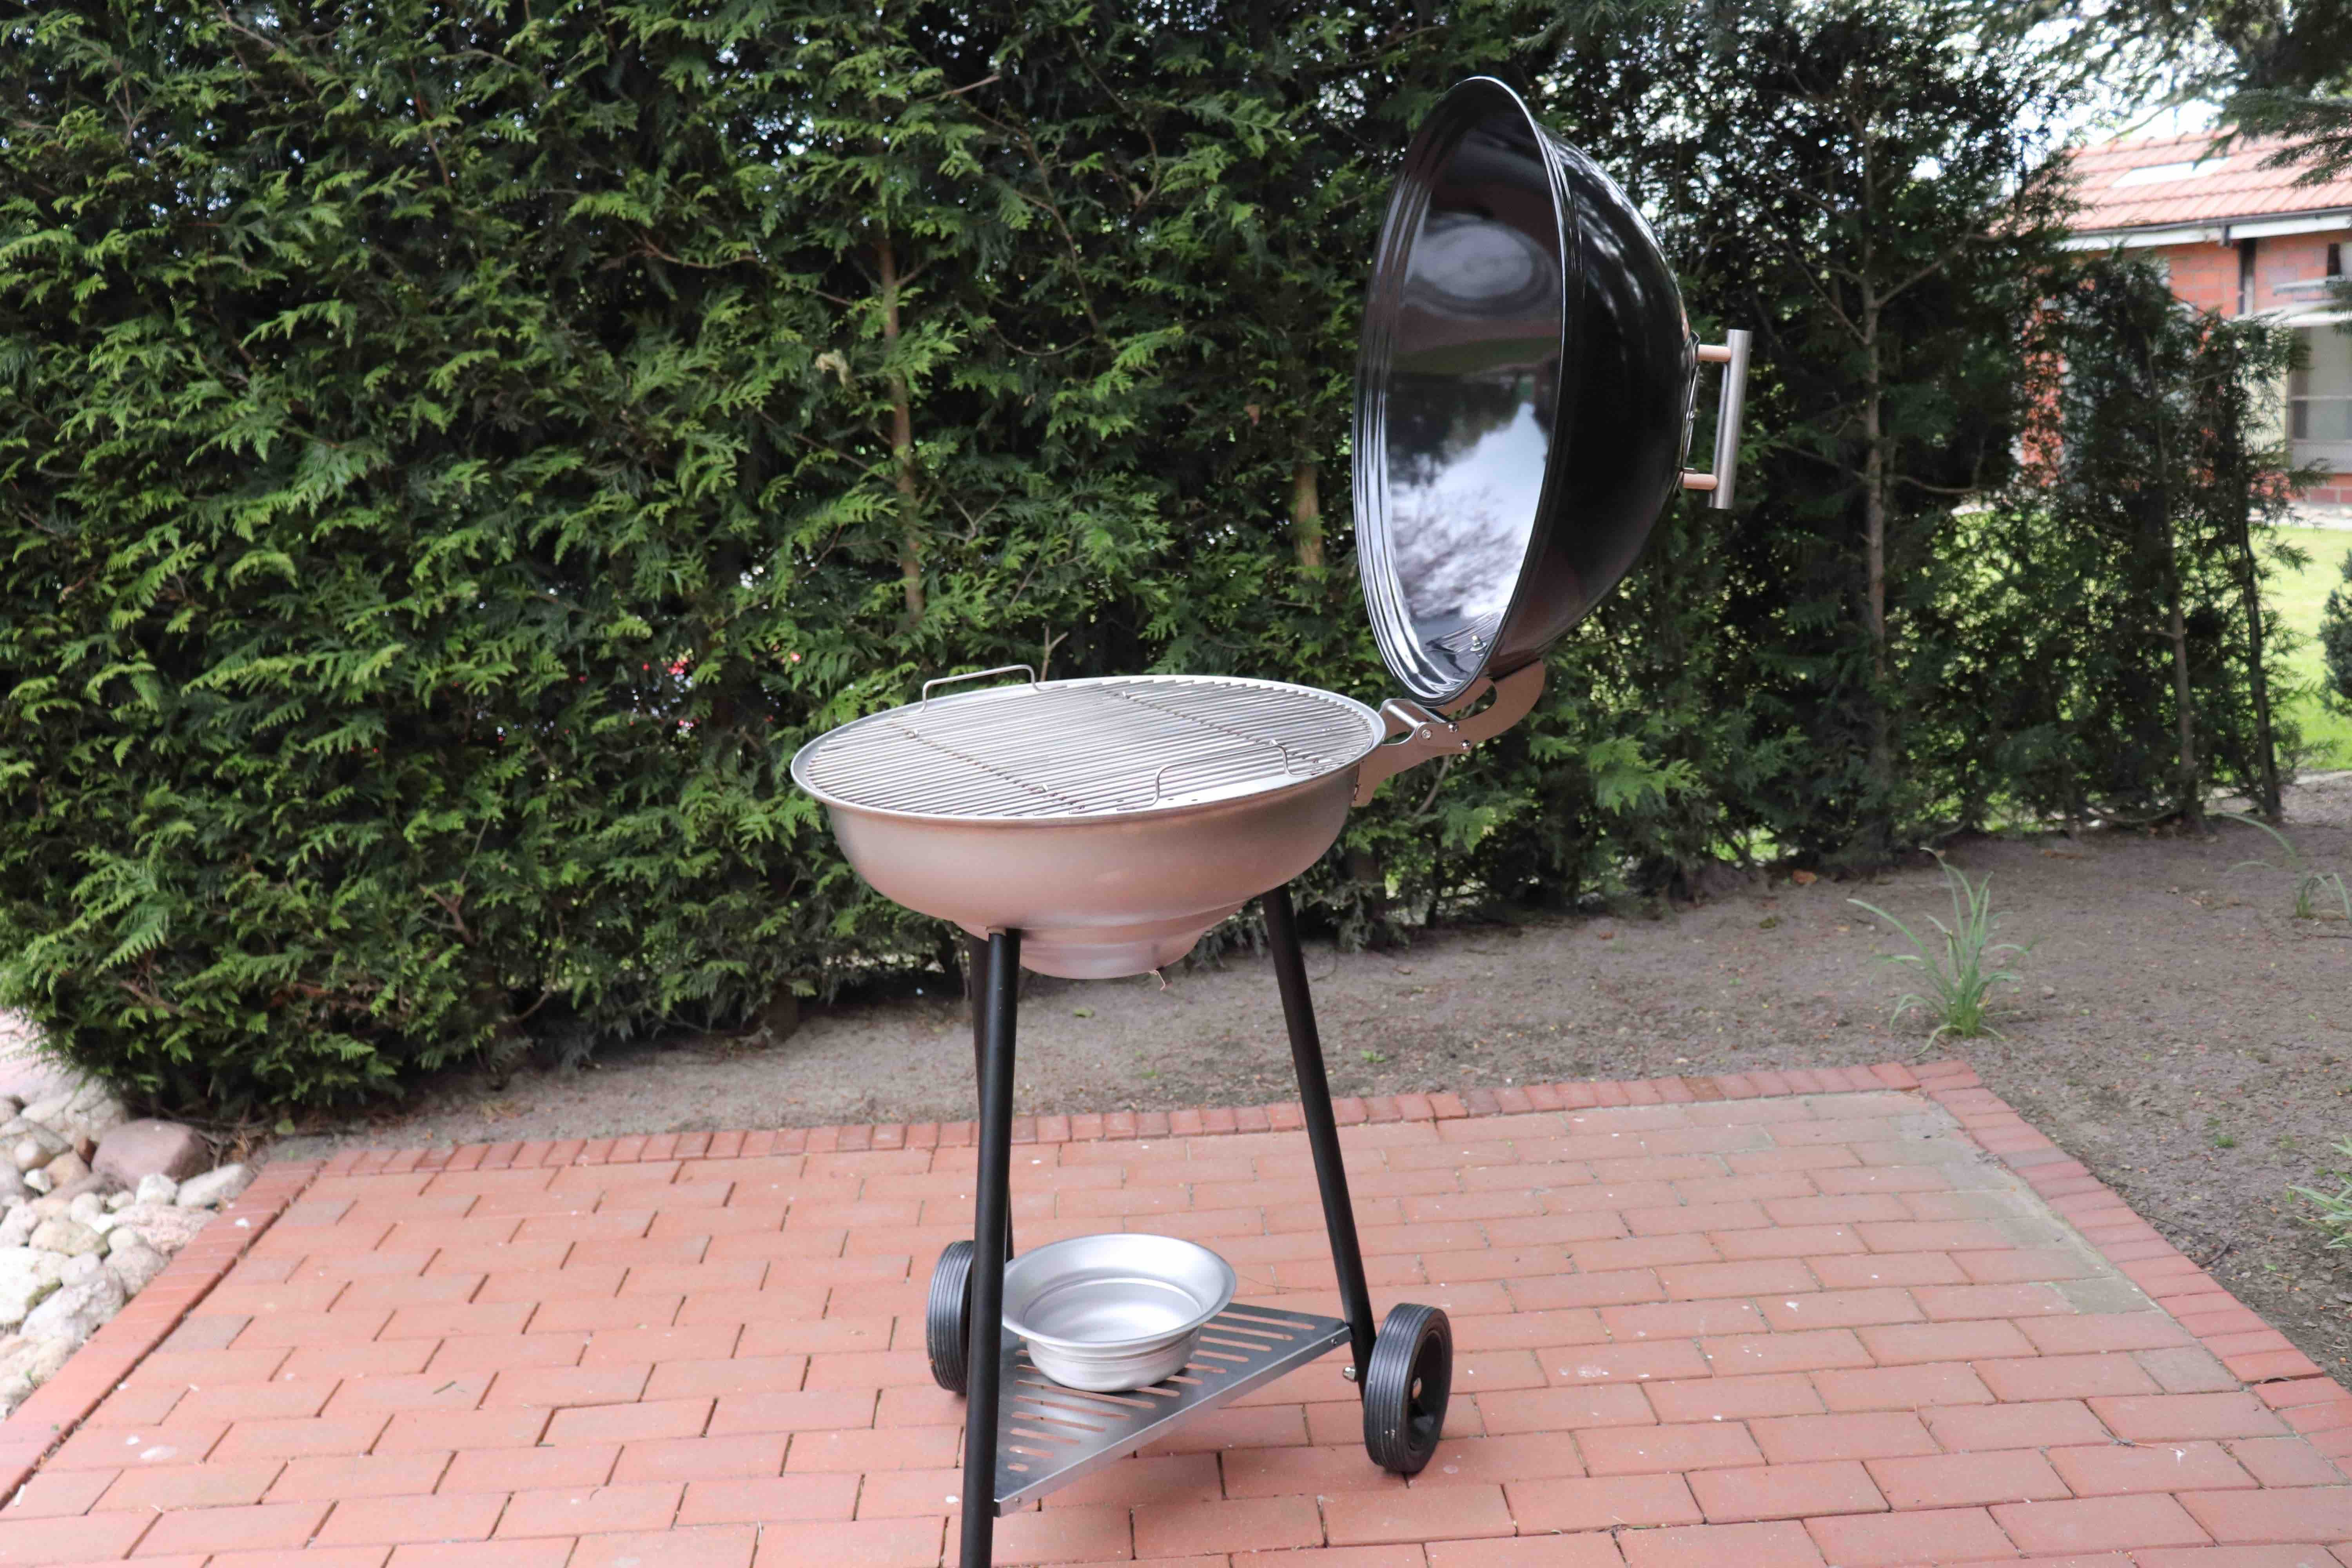 schickling grill im test - kohle & gas kombi made in germany